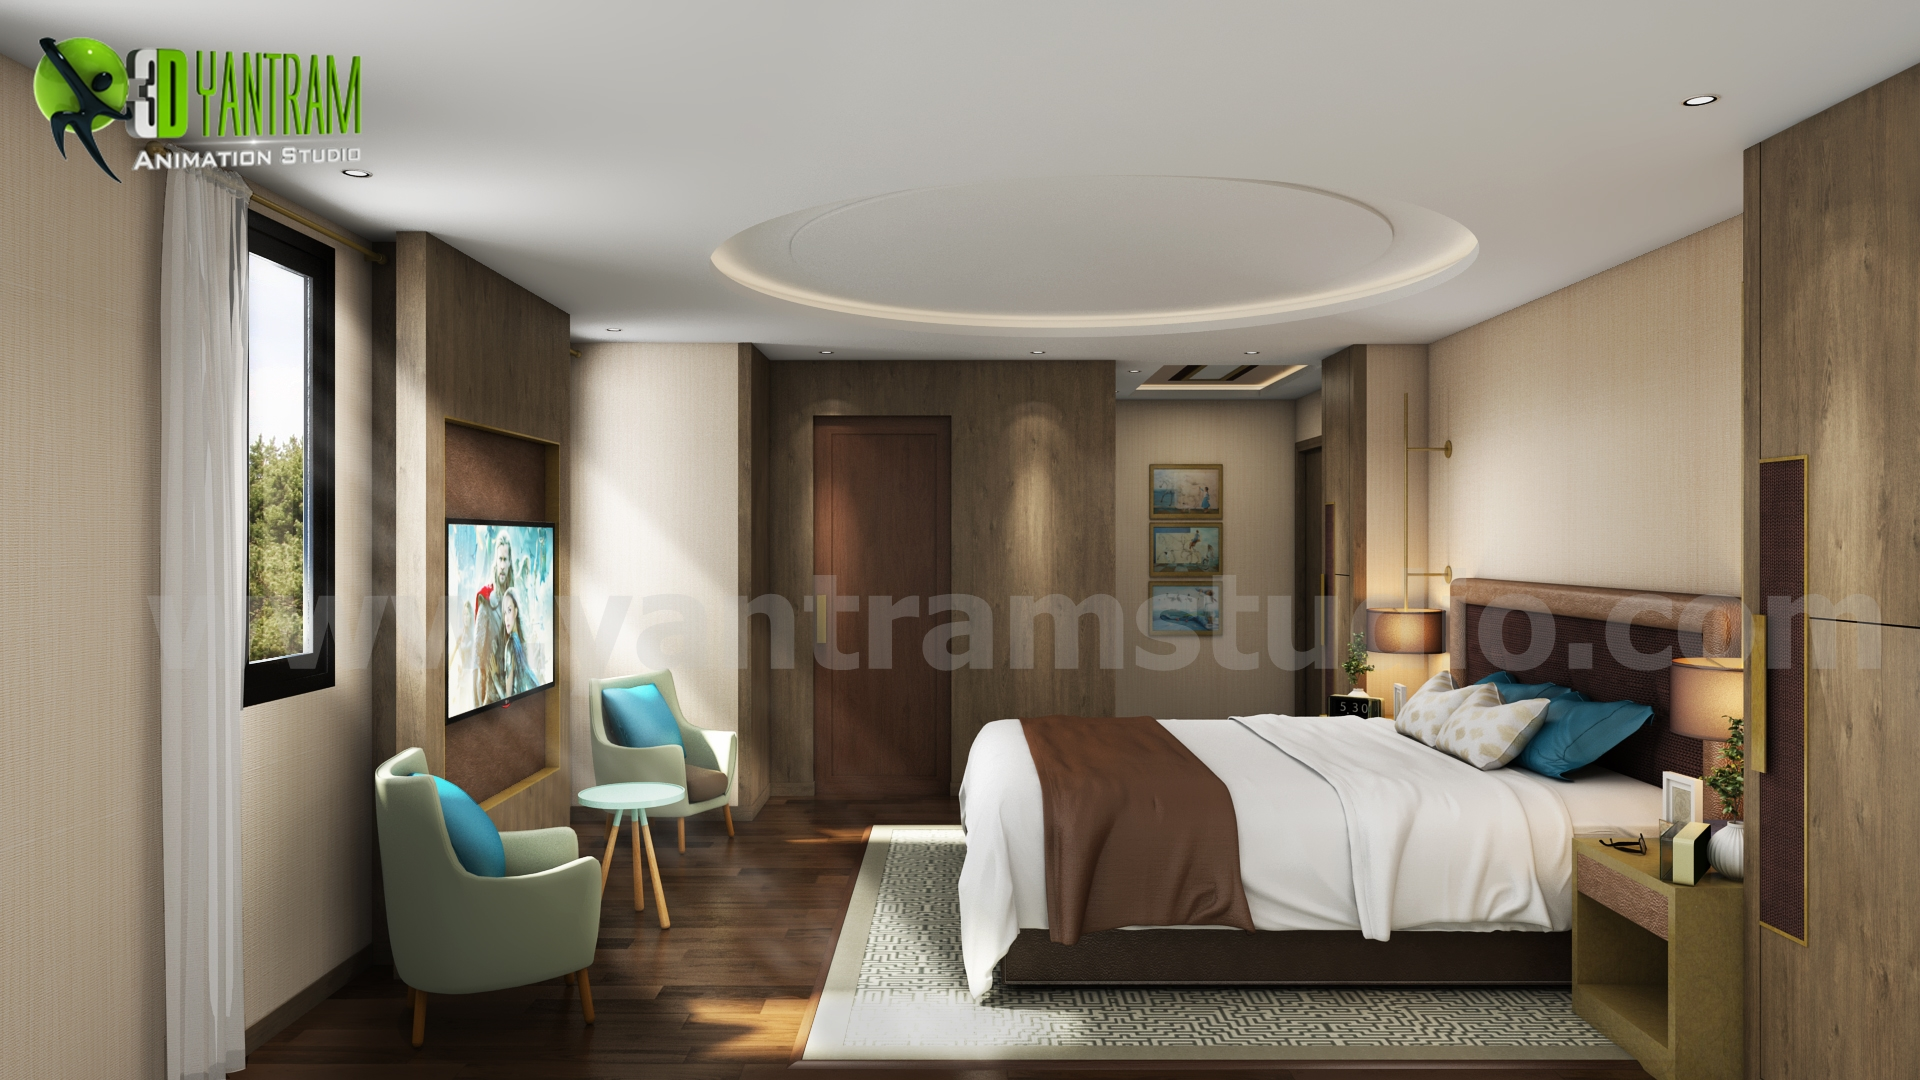 Interior Design Renovation Concept Interior Bedroom Design With Home Renovation Conceptyantram .